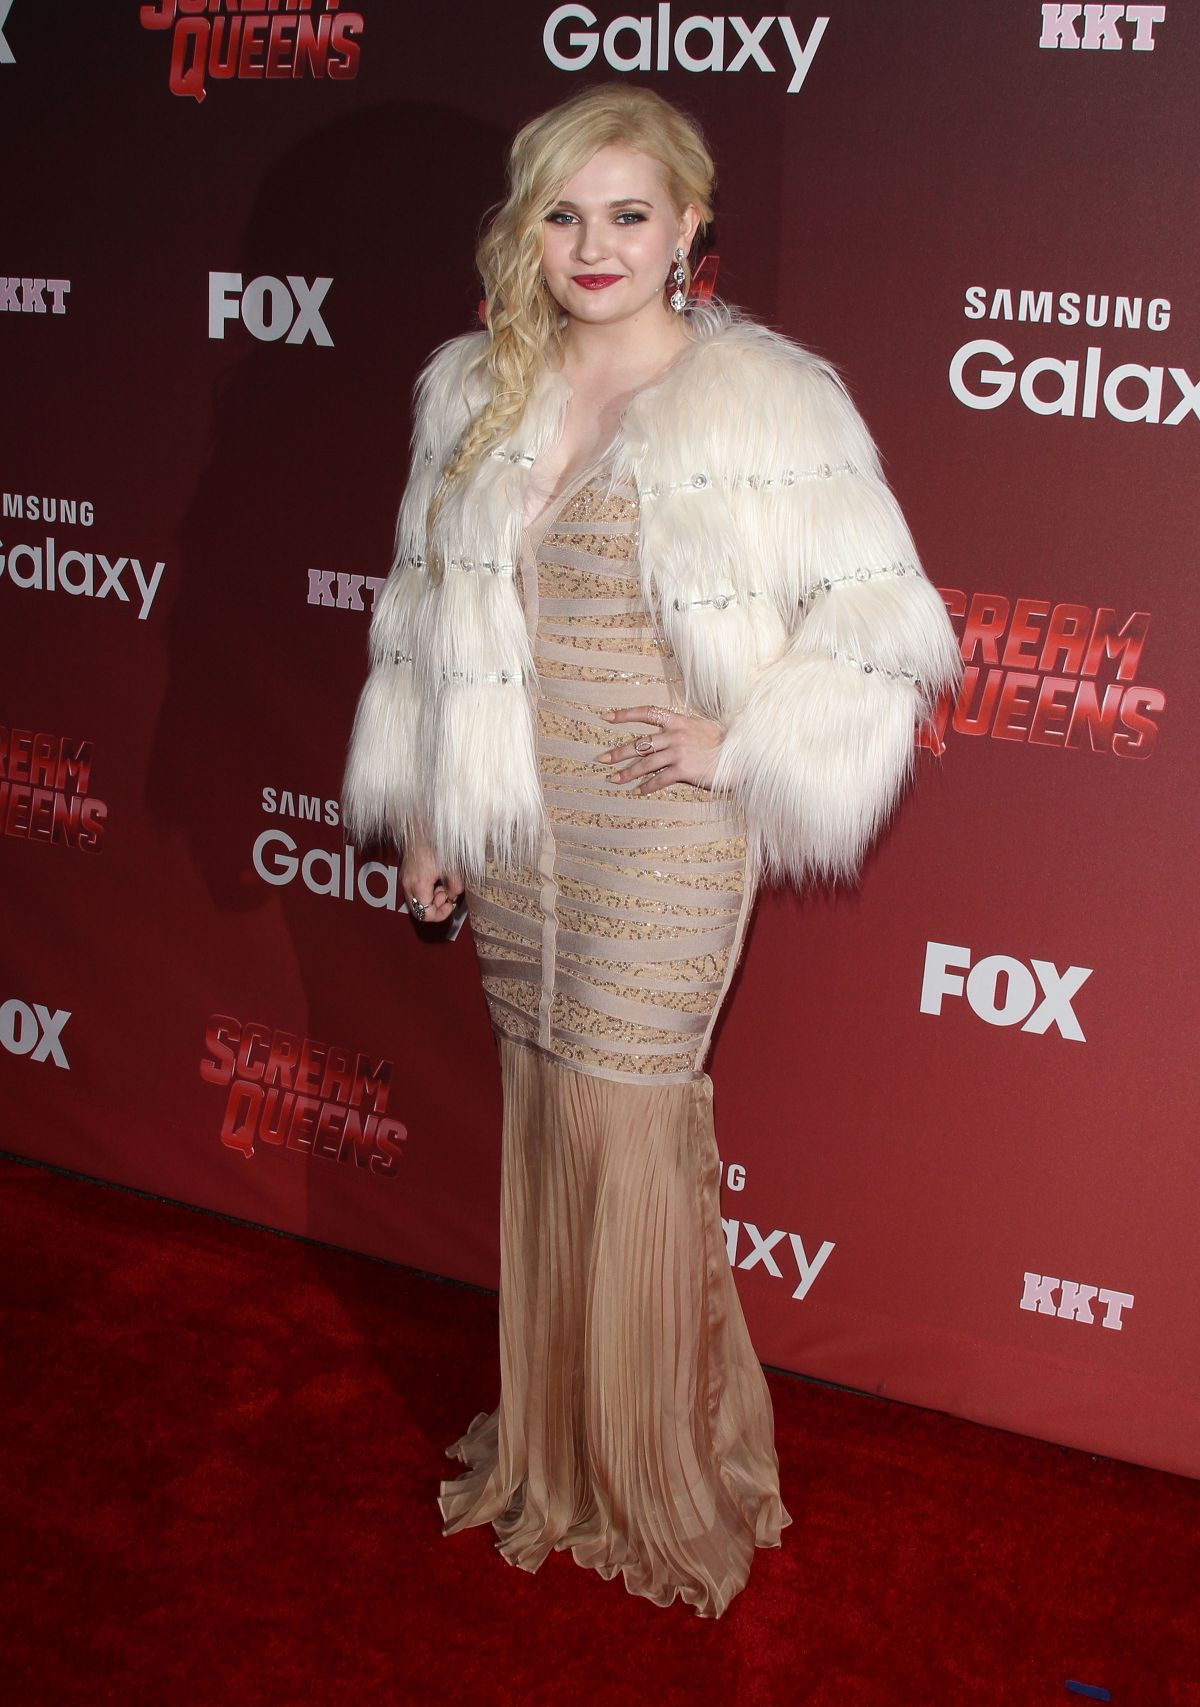 ABIGAIL BRESLIN at Scream Queens Premiere in Los Angeles 09/21/2015